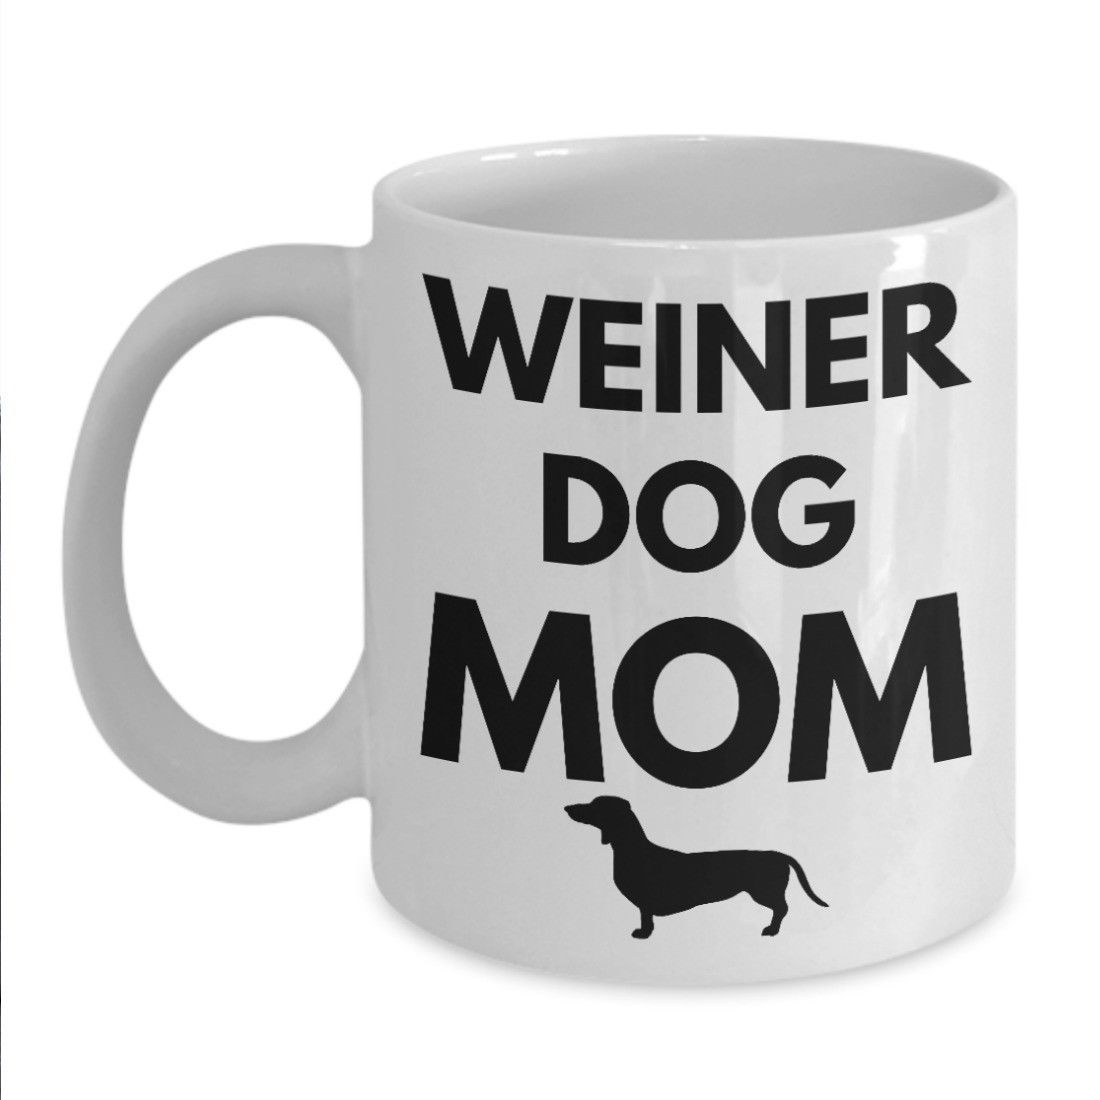 Weiner Dog Mom Mug Dachshund Doxie Dog Coffee Cup Mothers Day Gift Ceramic White